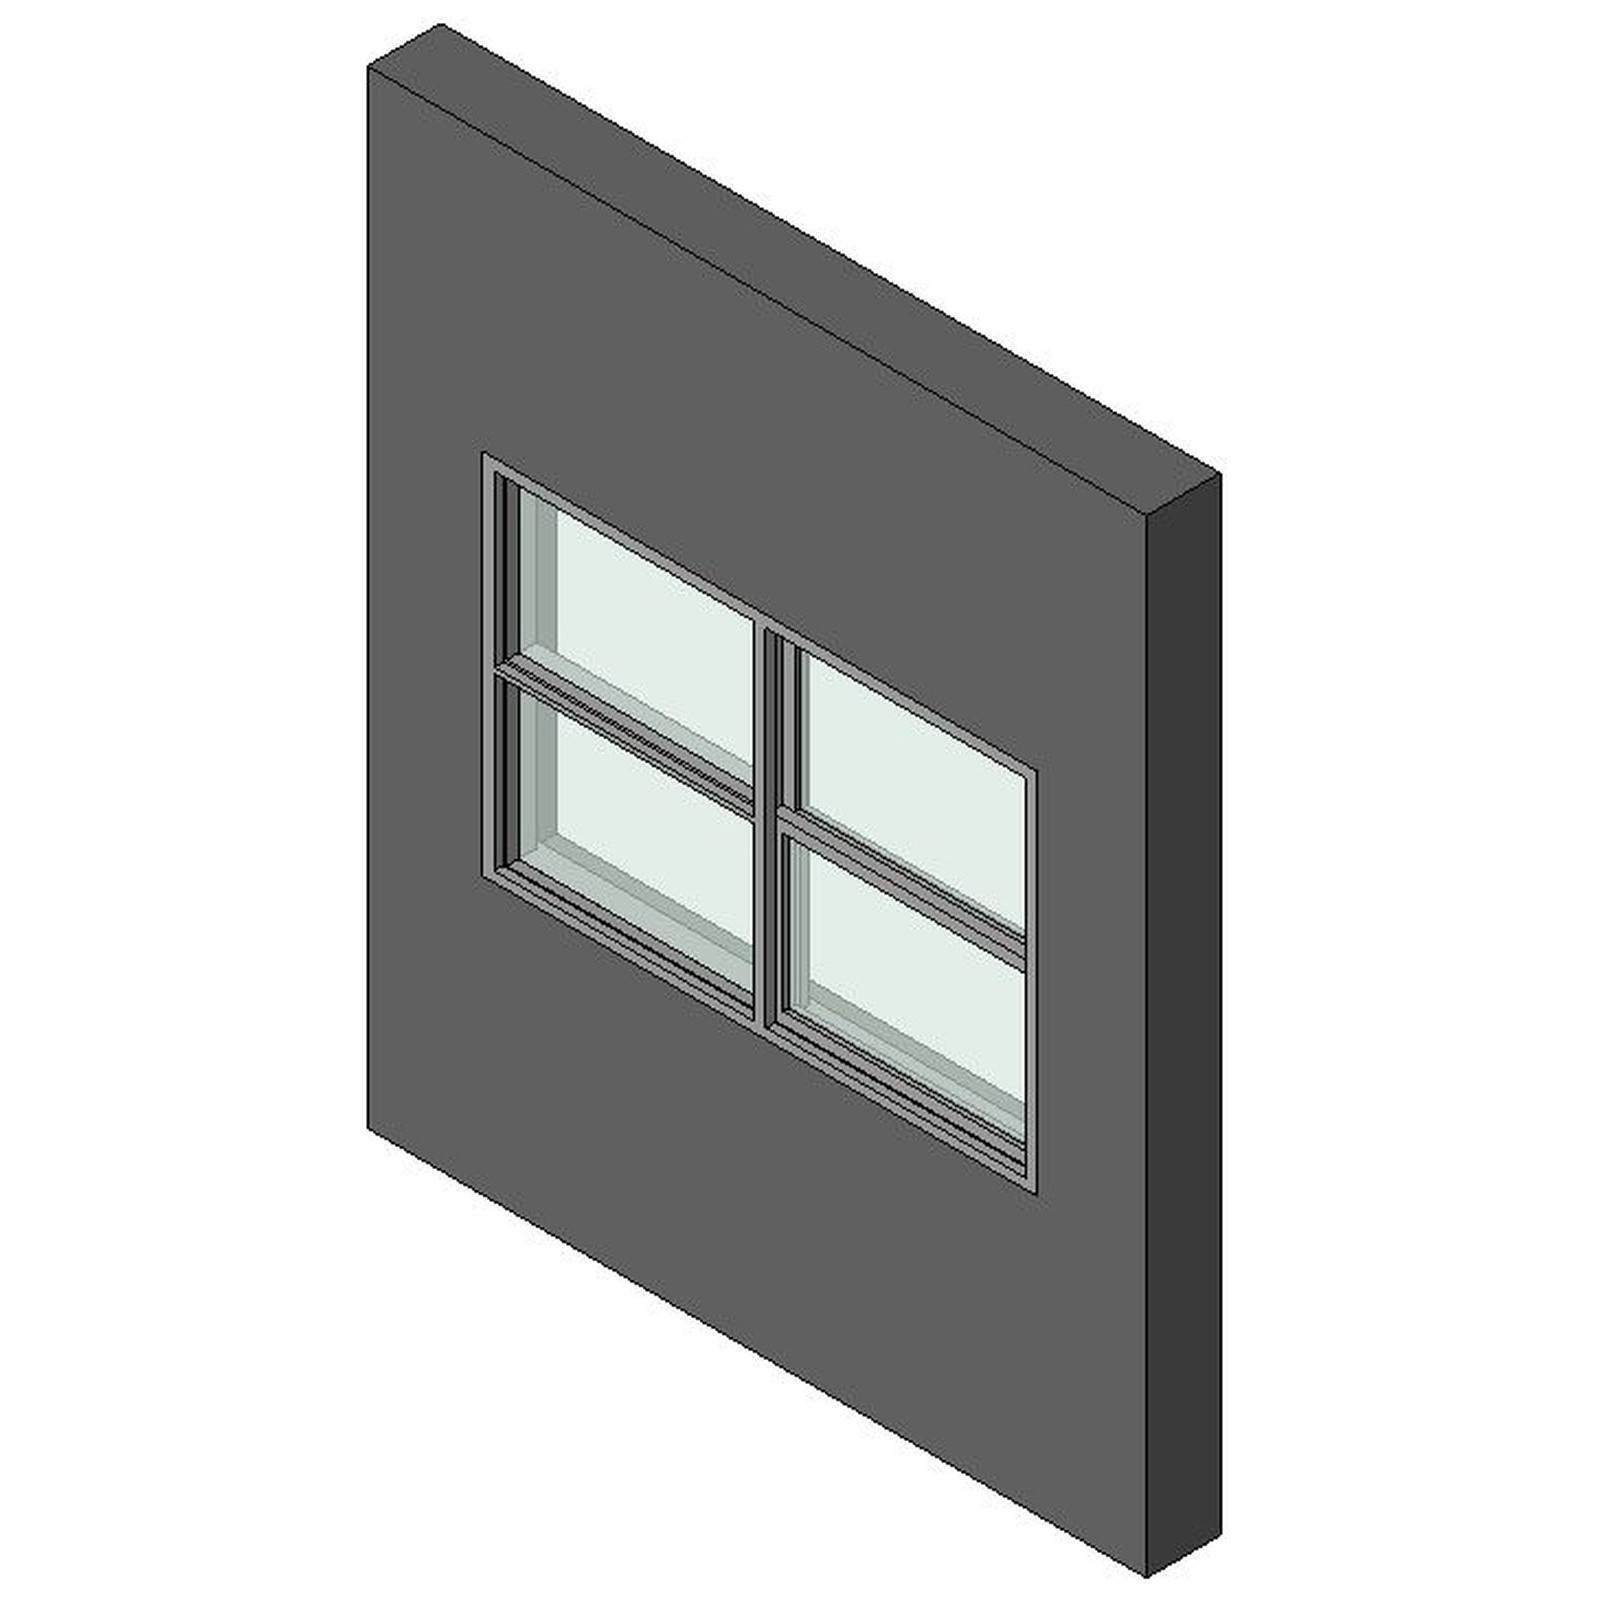 Timber Dhung Window With Fixed Sash Design Content